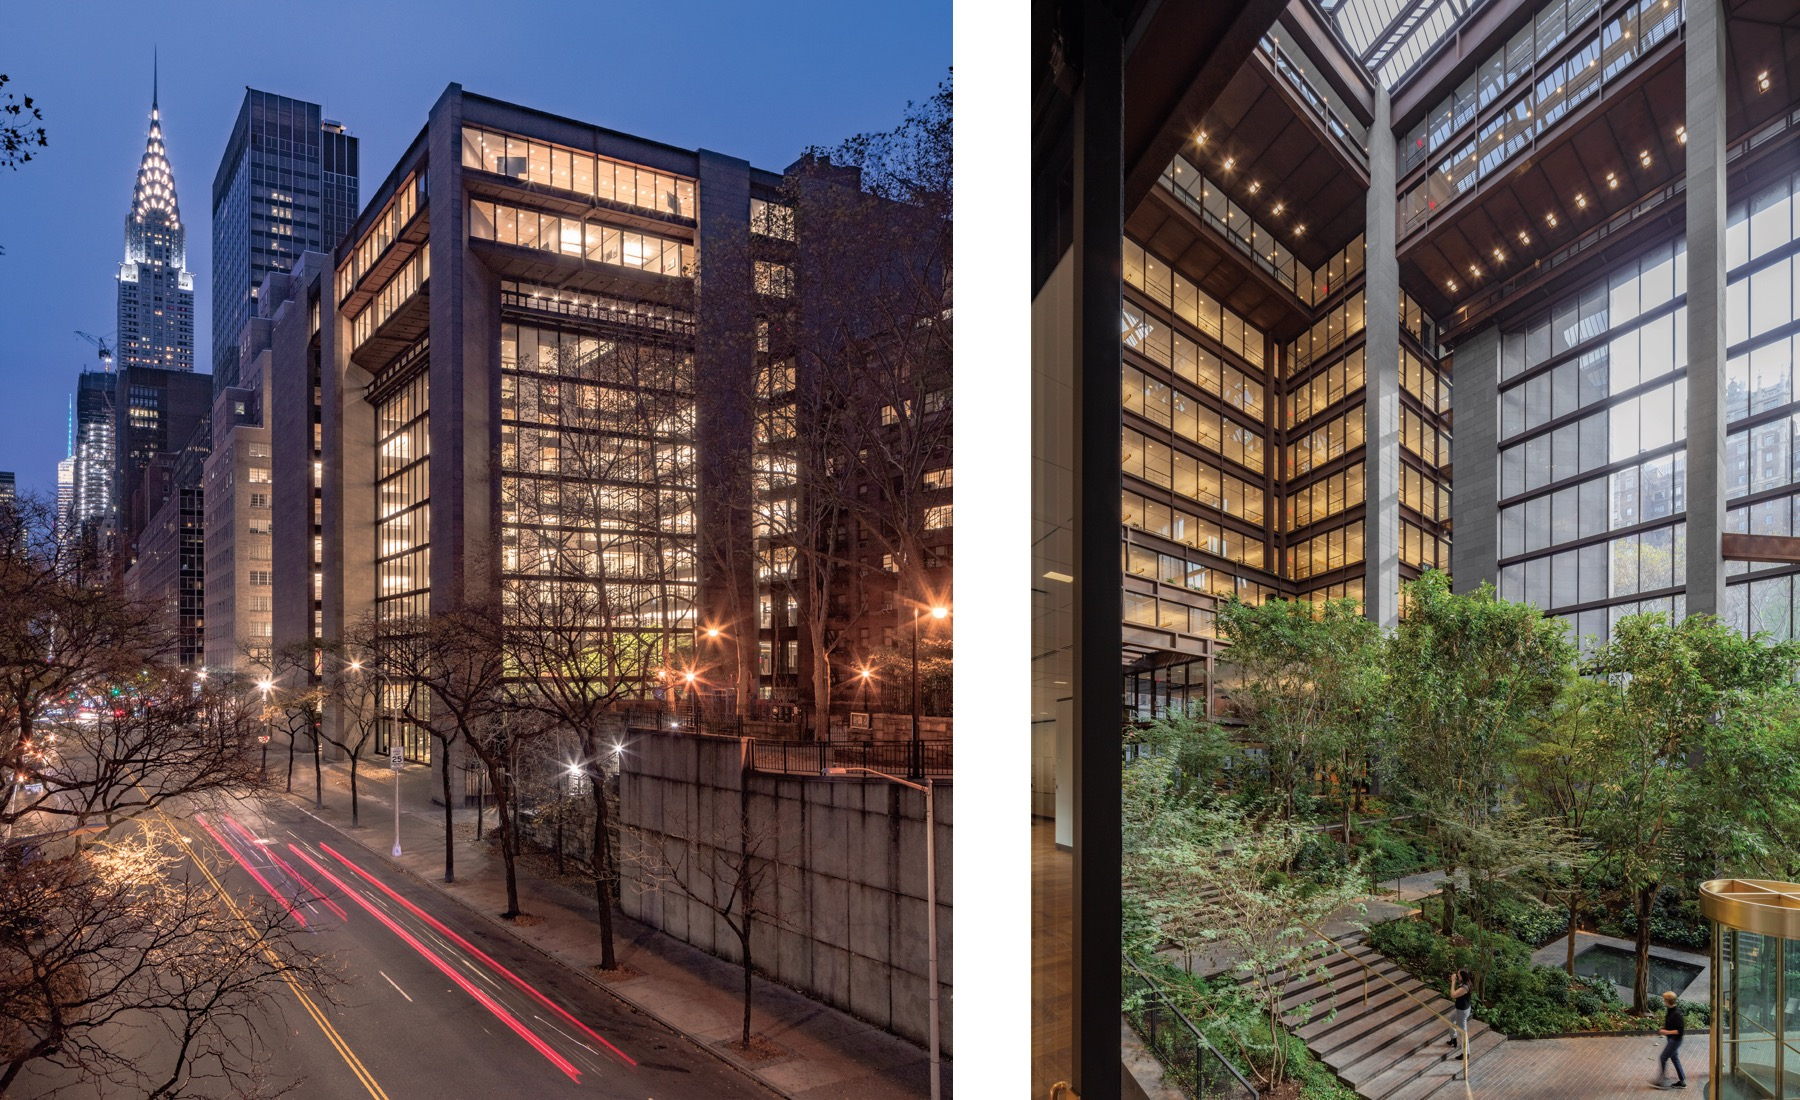 Renovated Ford Foundation Center for Social Justice by Gensler